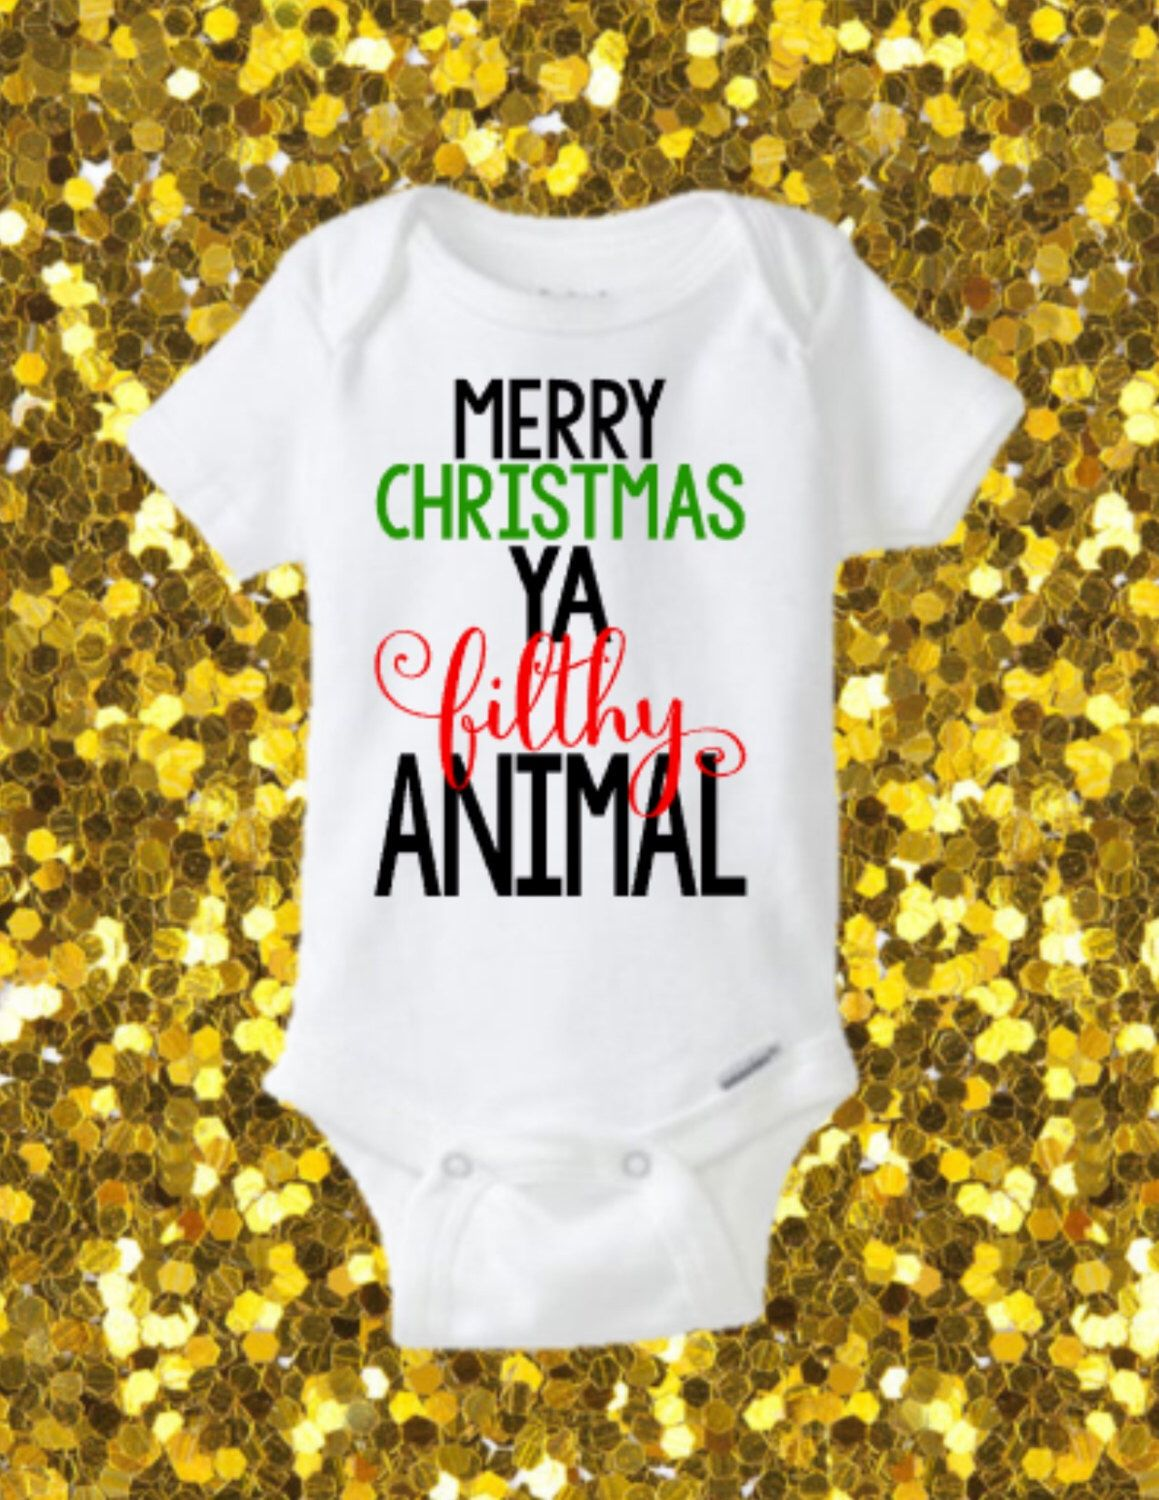 merry christmas ya filthy animal onesie funny christmas onesie christmas shirt christmas outfit - Merry Christmas Ya Filthy Animal Onesie